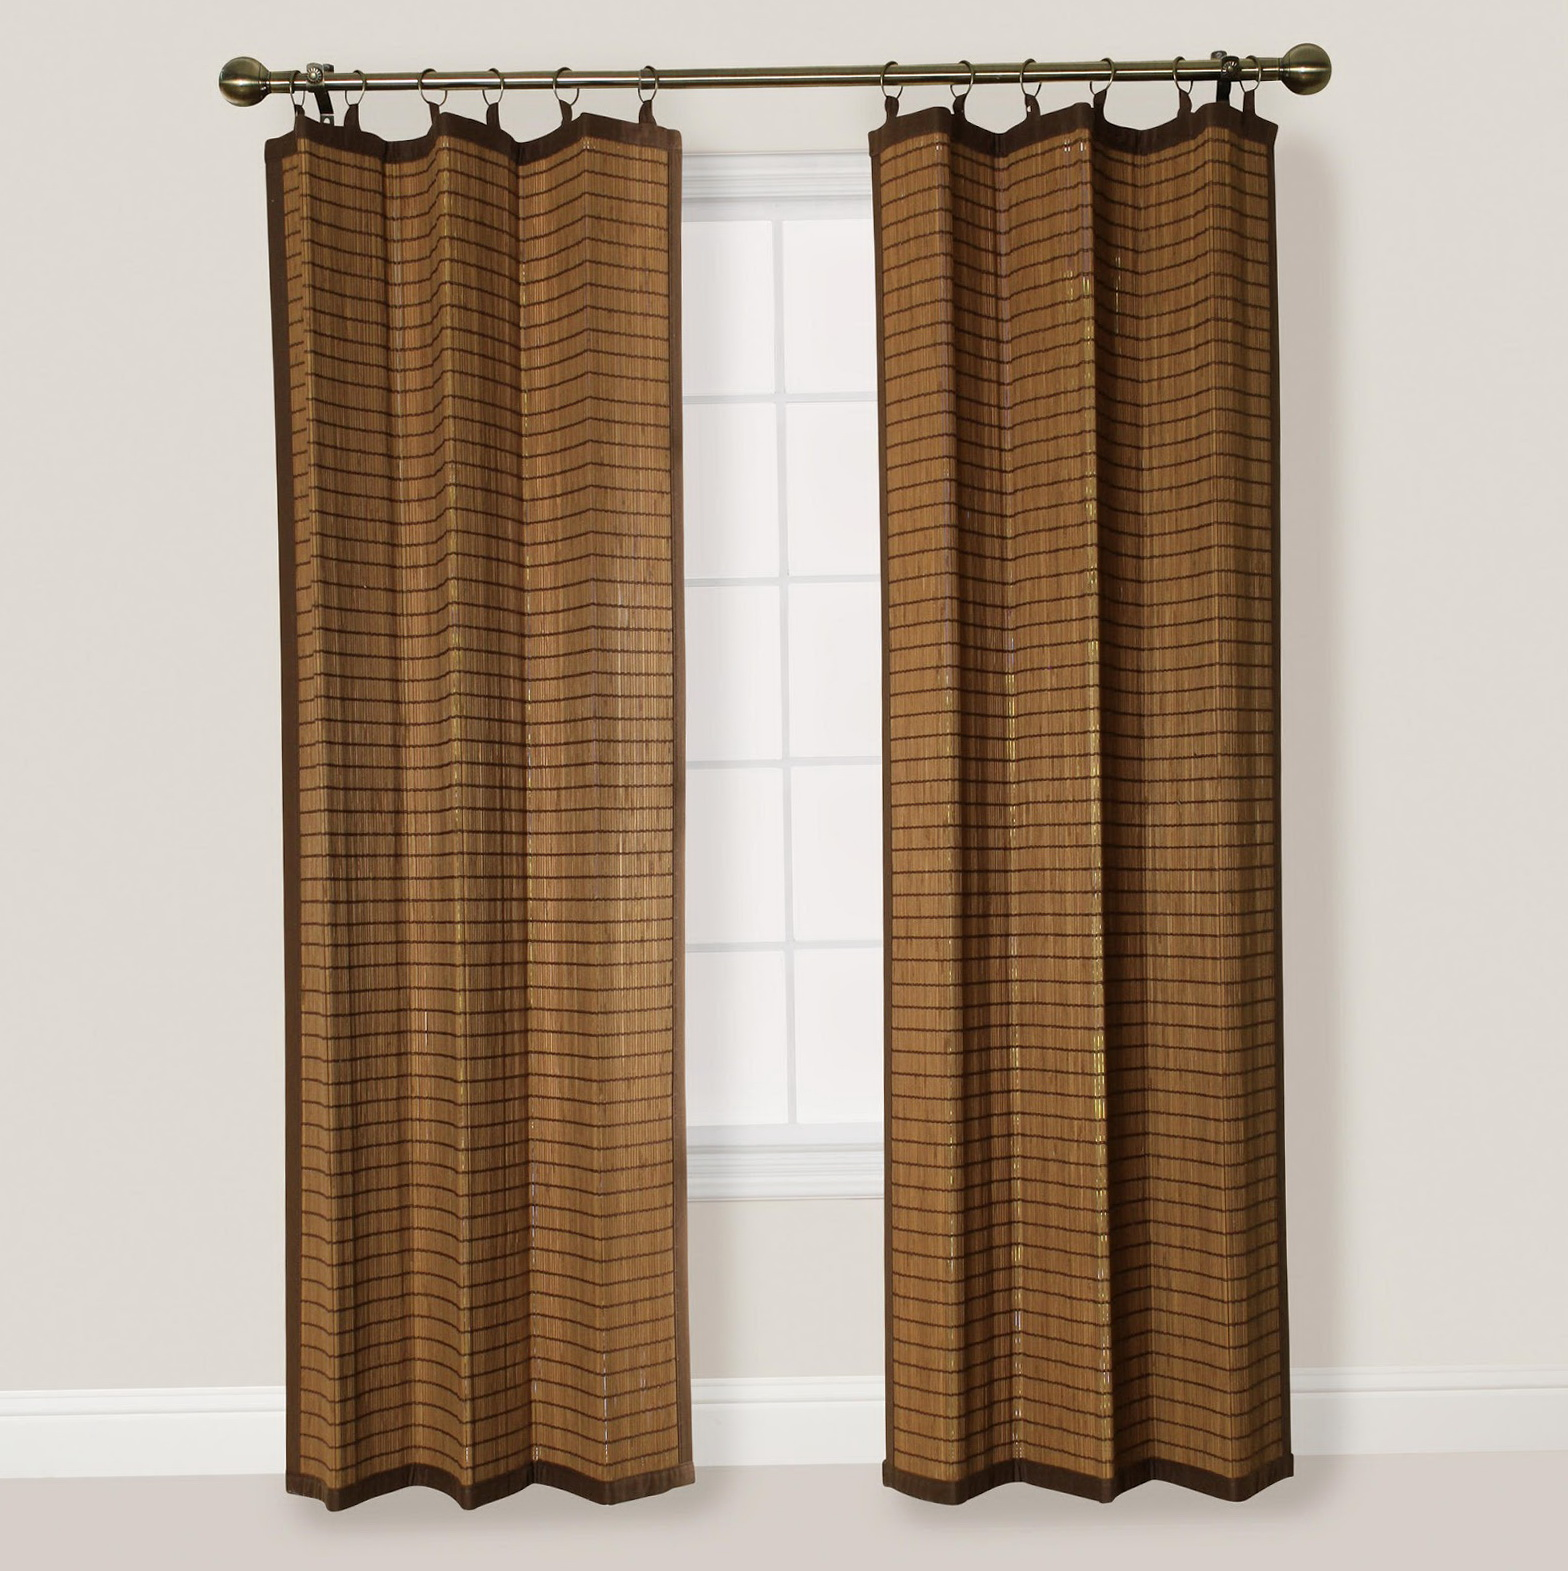 Bamboo Kitchen Curtains: Bamboo Curtains For Doors